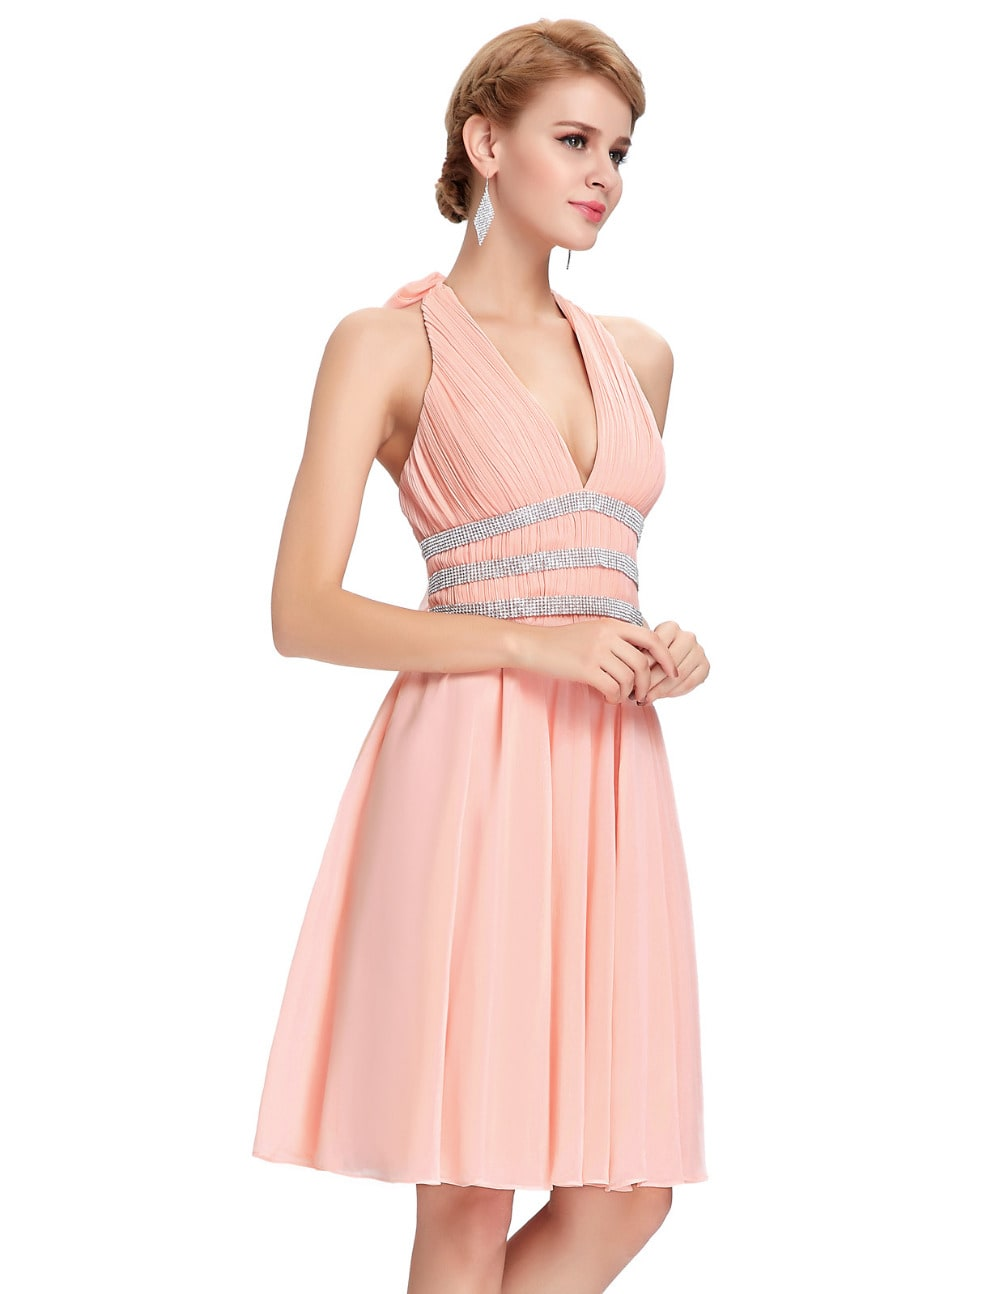 Peach Chiffon Halter Pin Up Dress Vintage Clothing